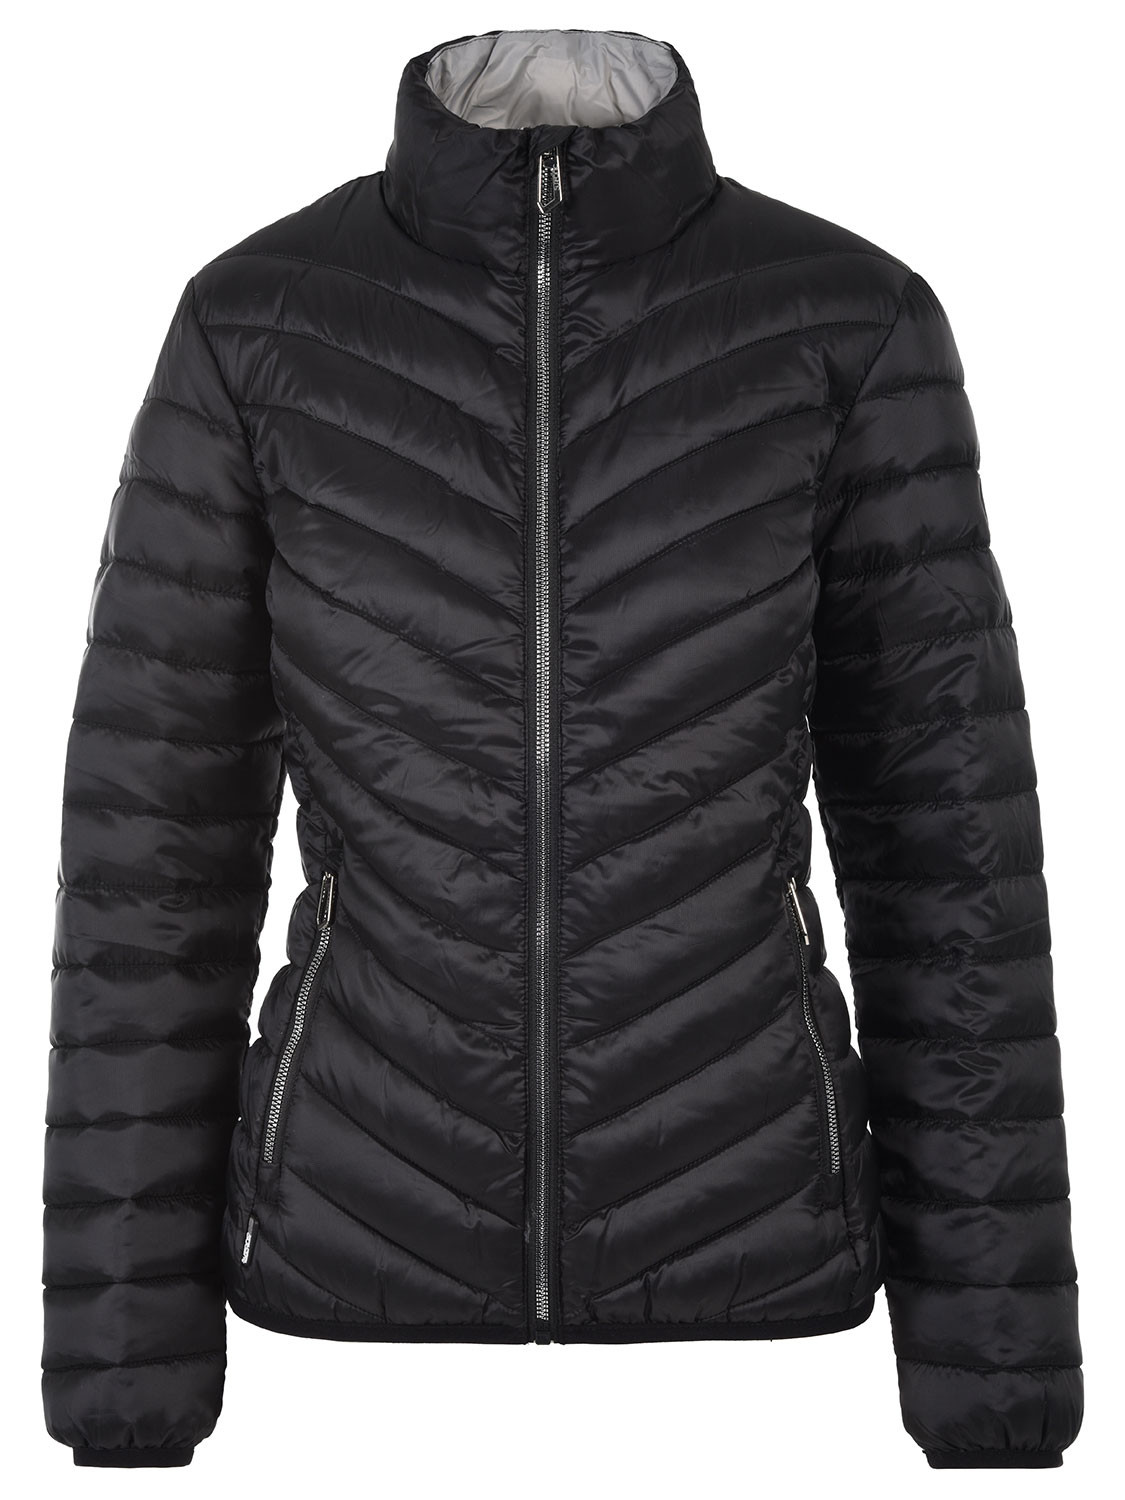 Ember Recycled Fill Jacket